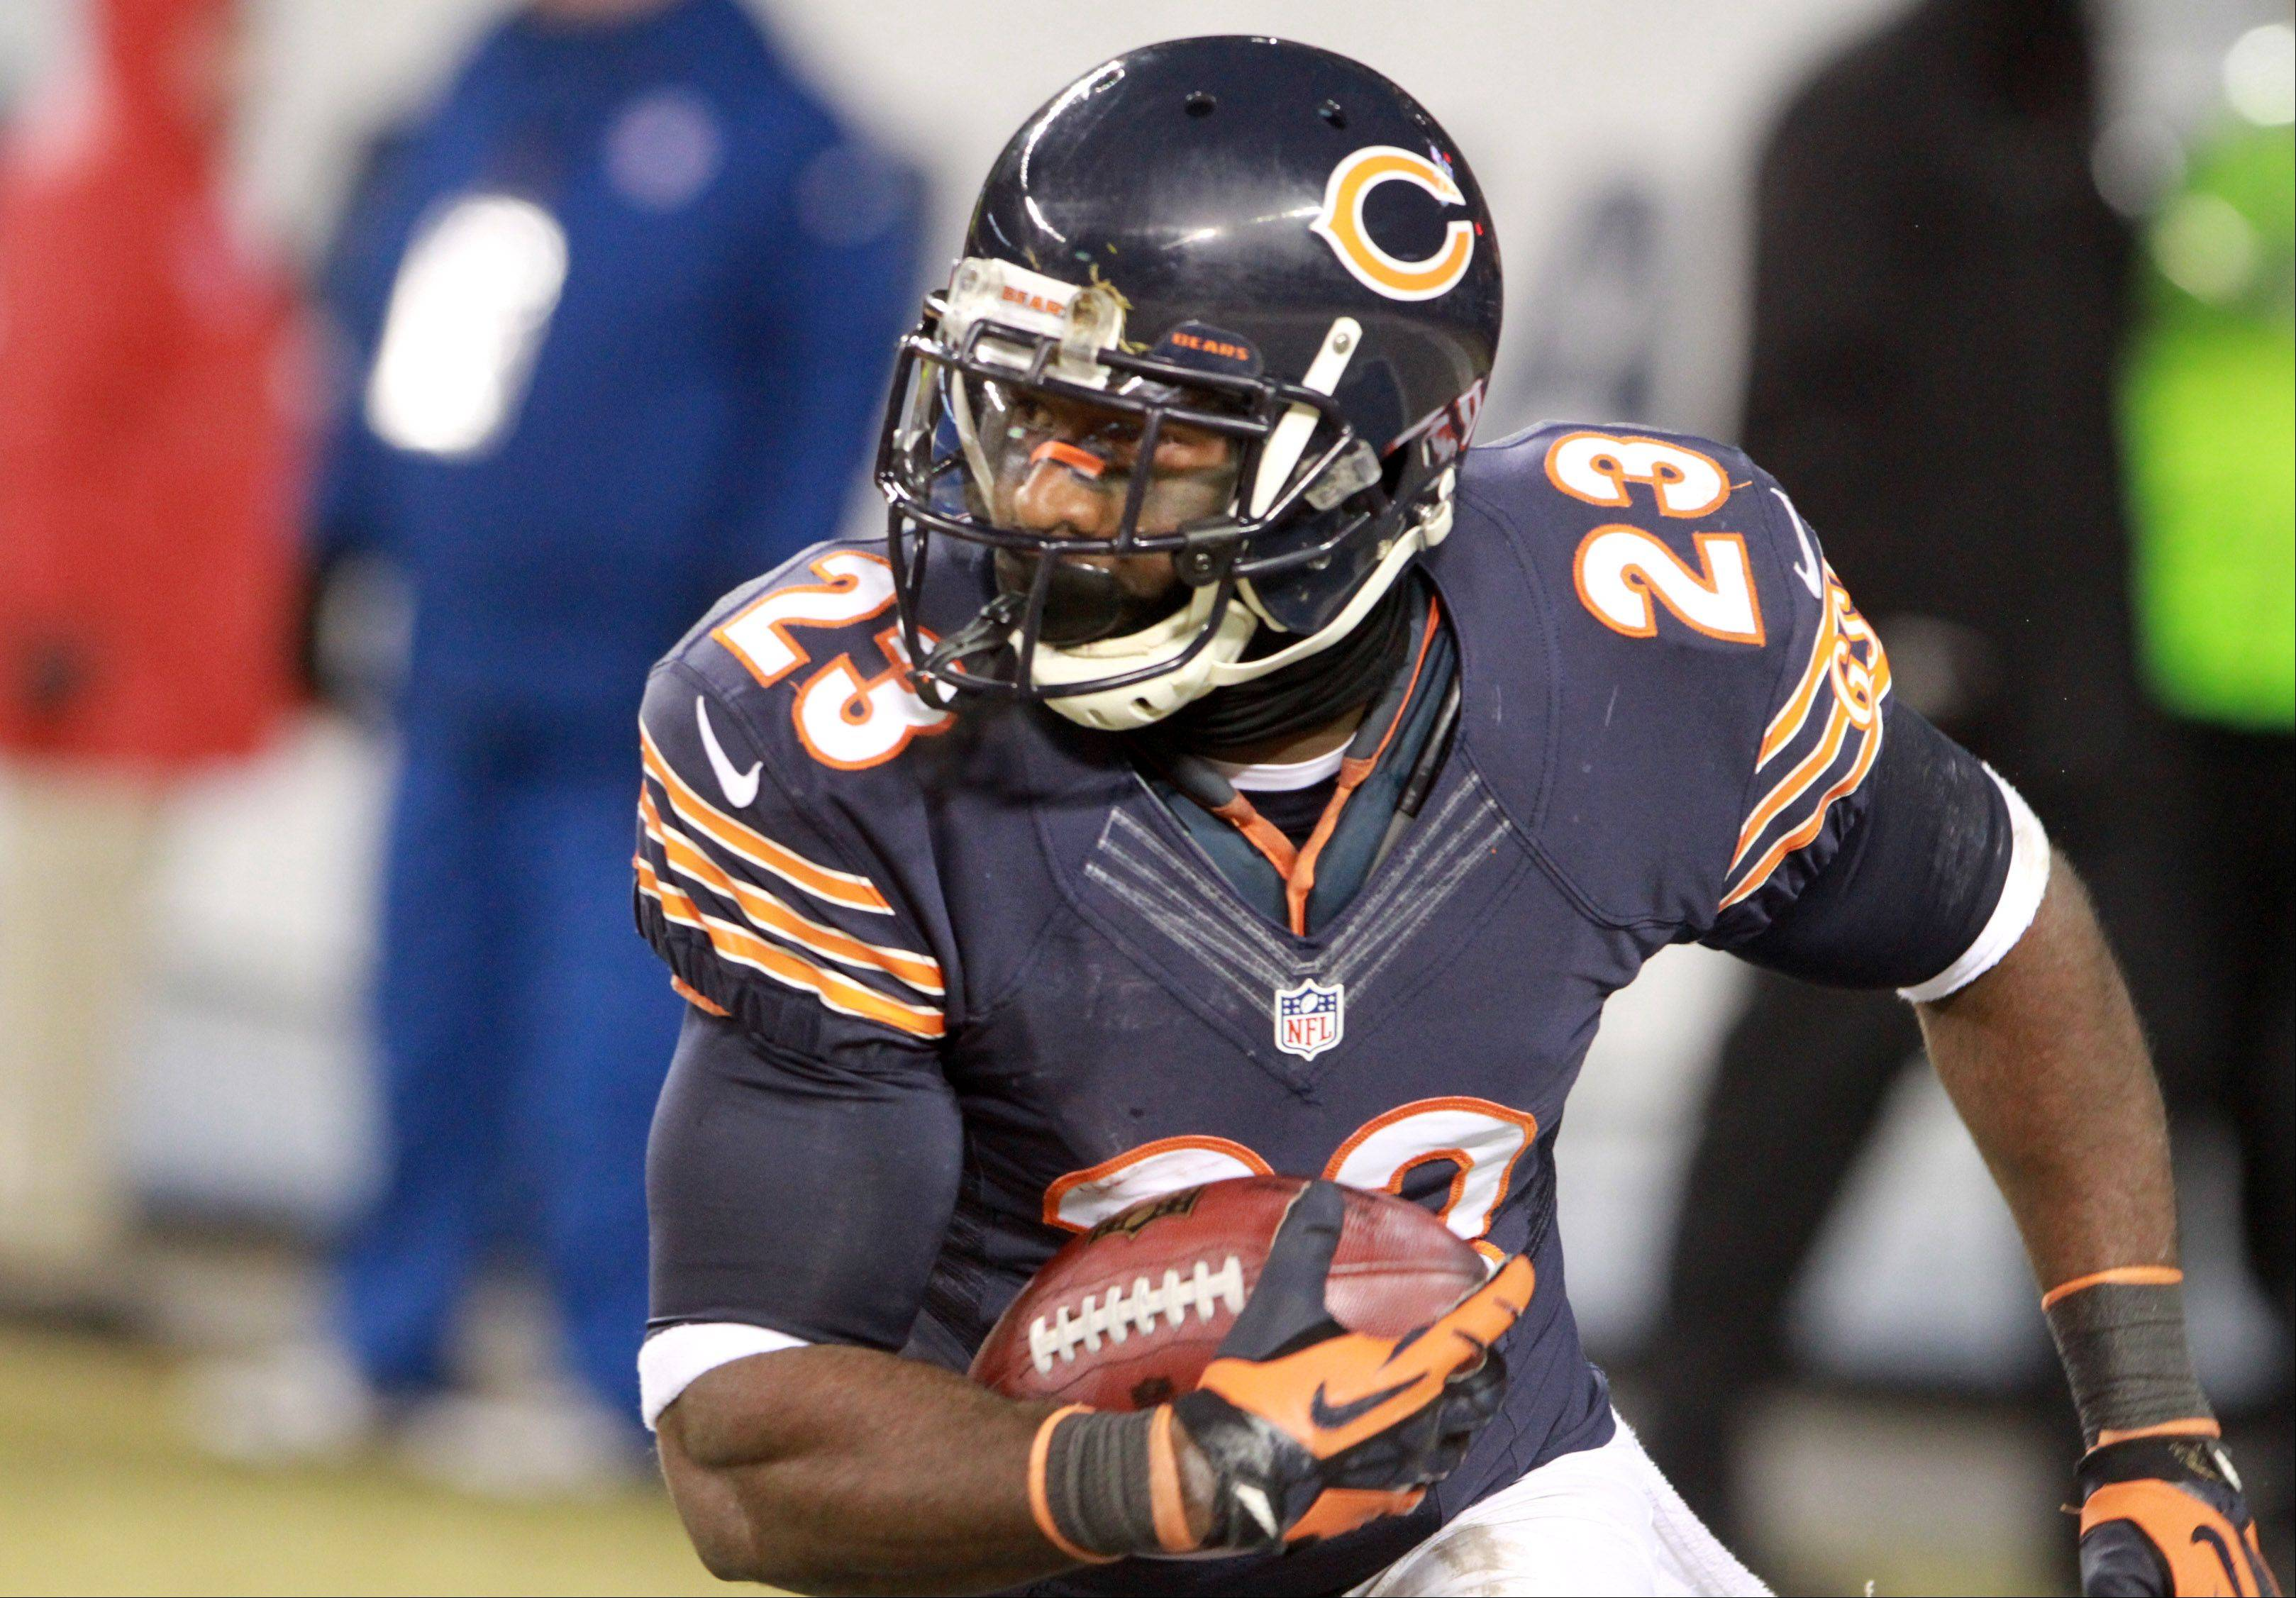 Bears kicker-returner extraordinaire Devin Hester wants to know sooner rather than later if the Bears want him back next season.